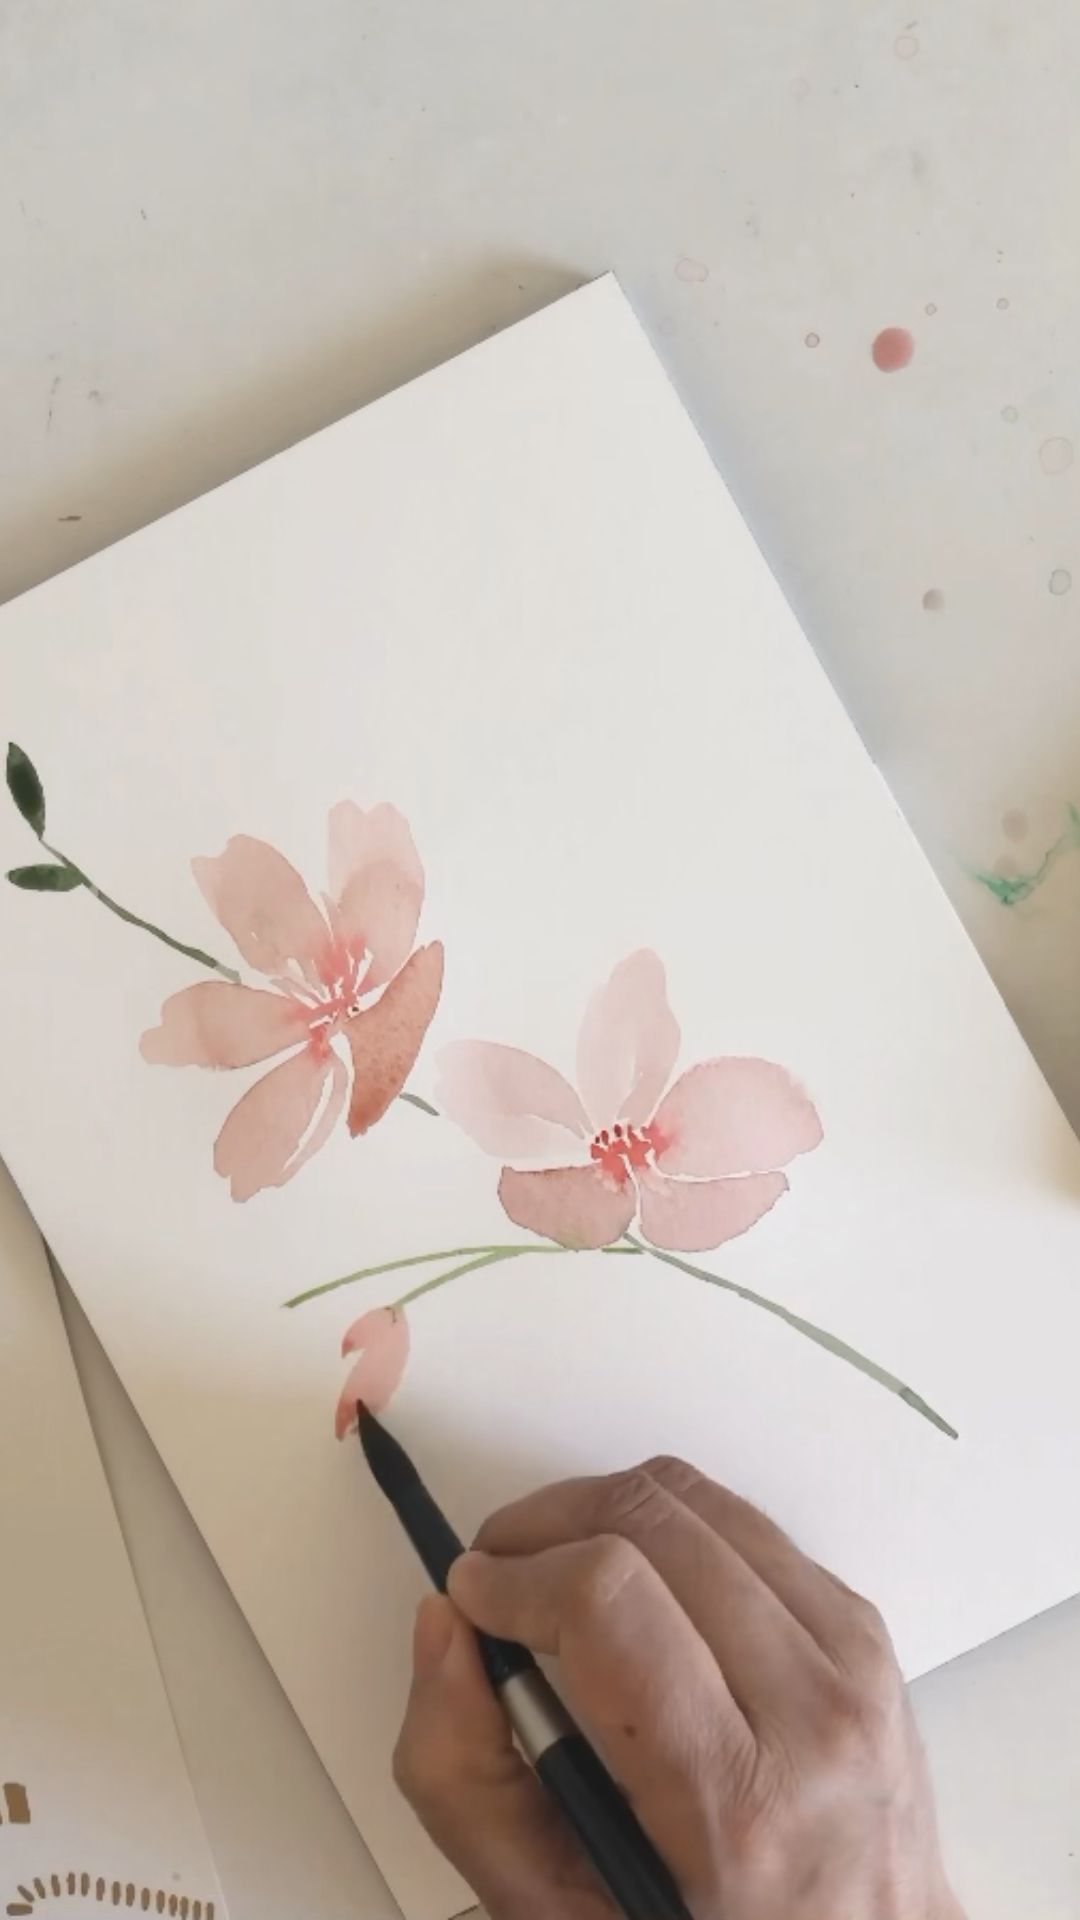 How to paint easy watercolor flowers